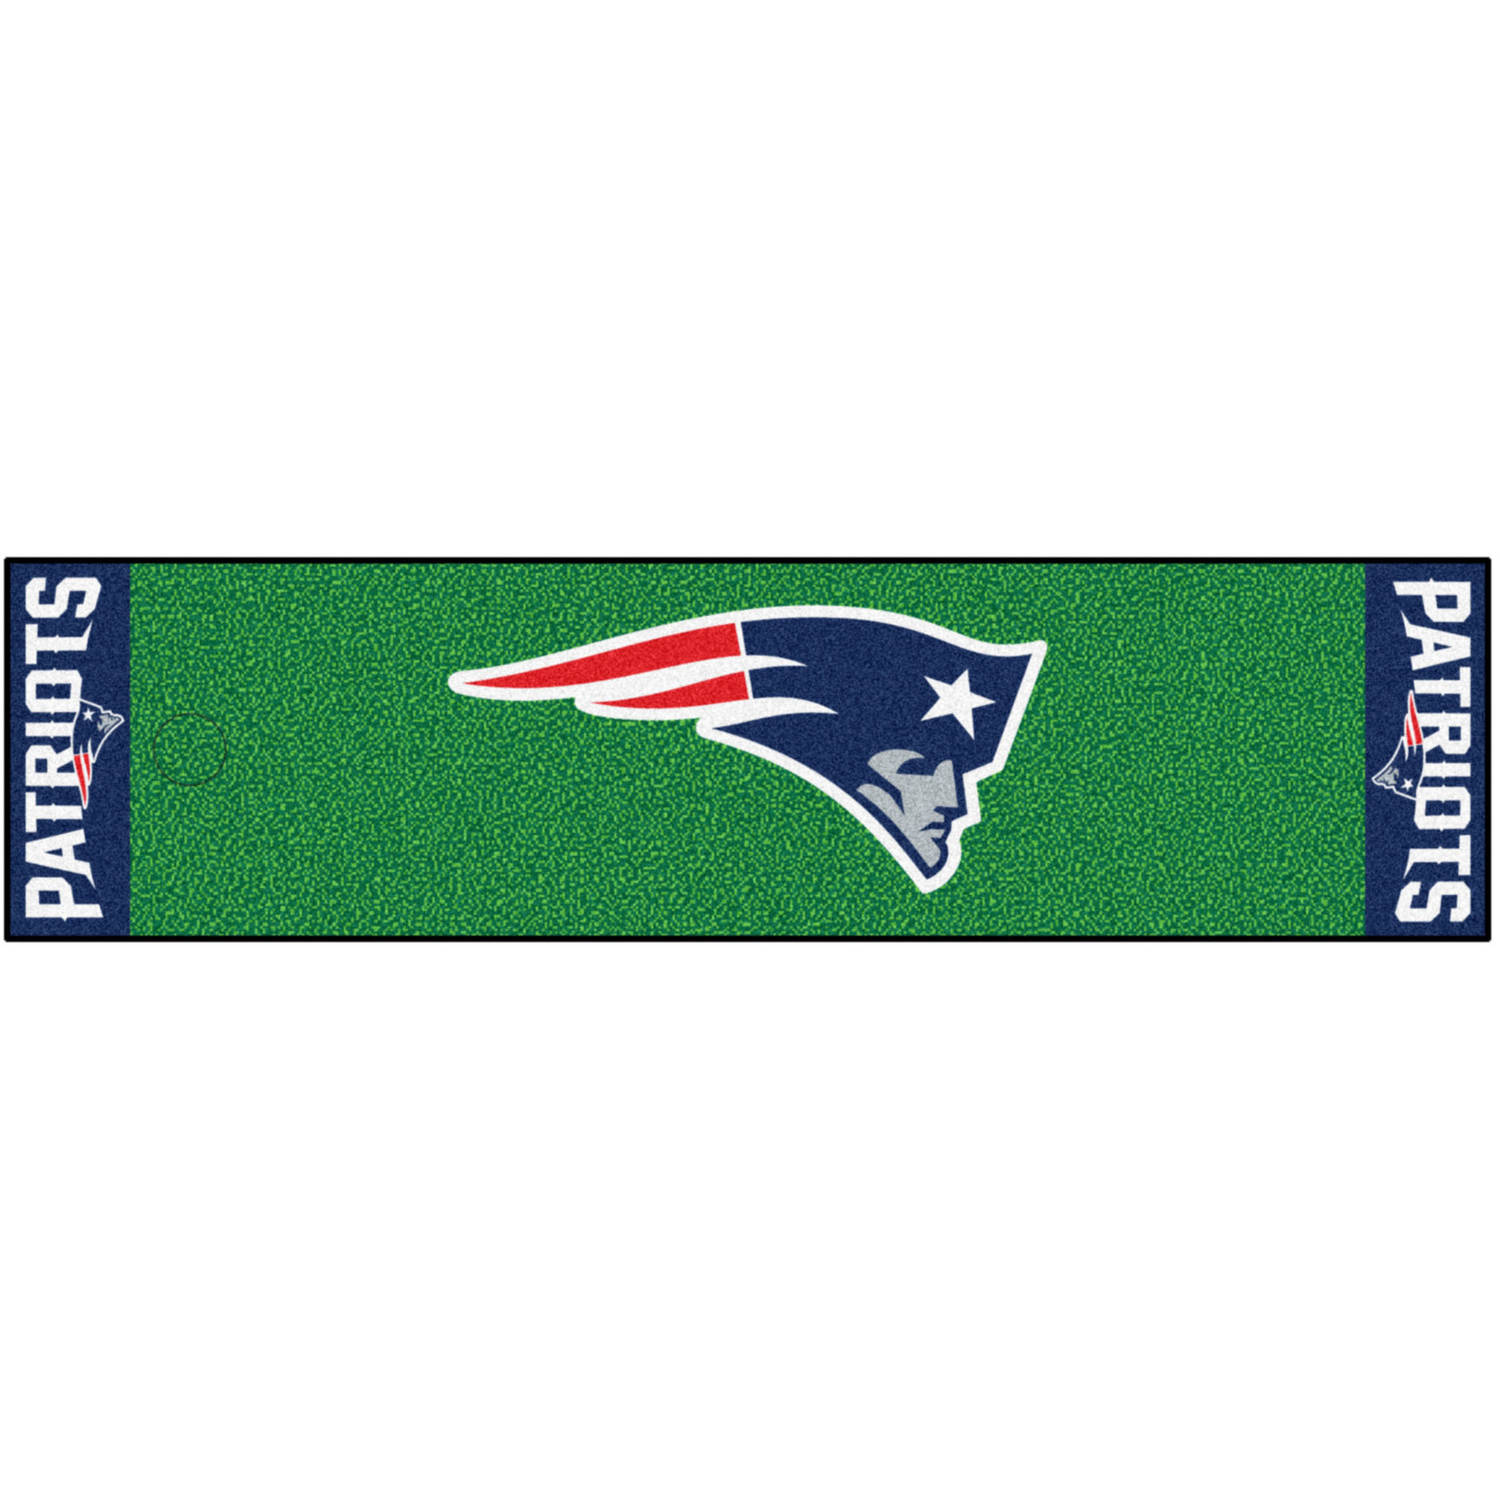 FanMats NFL New England Patriots Putting Green Mat